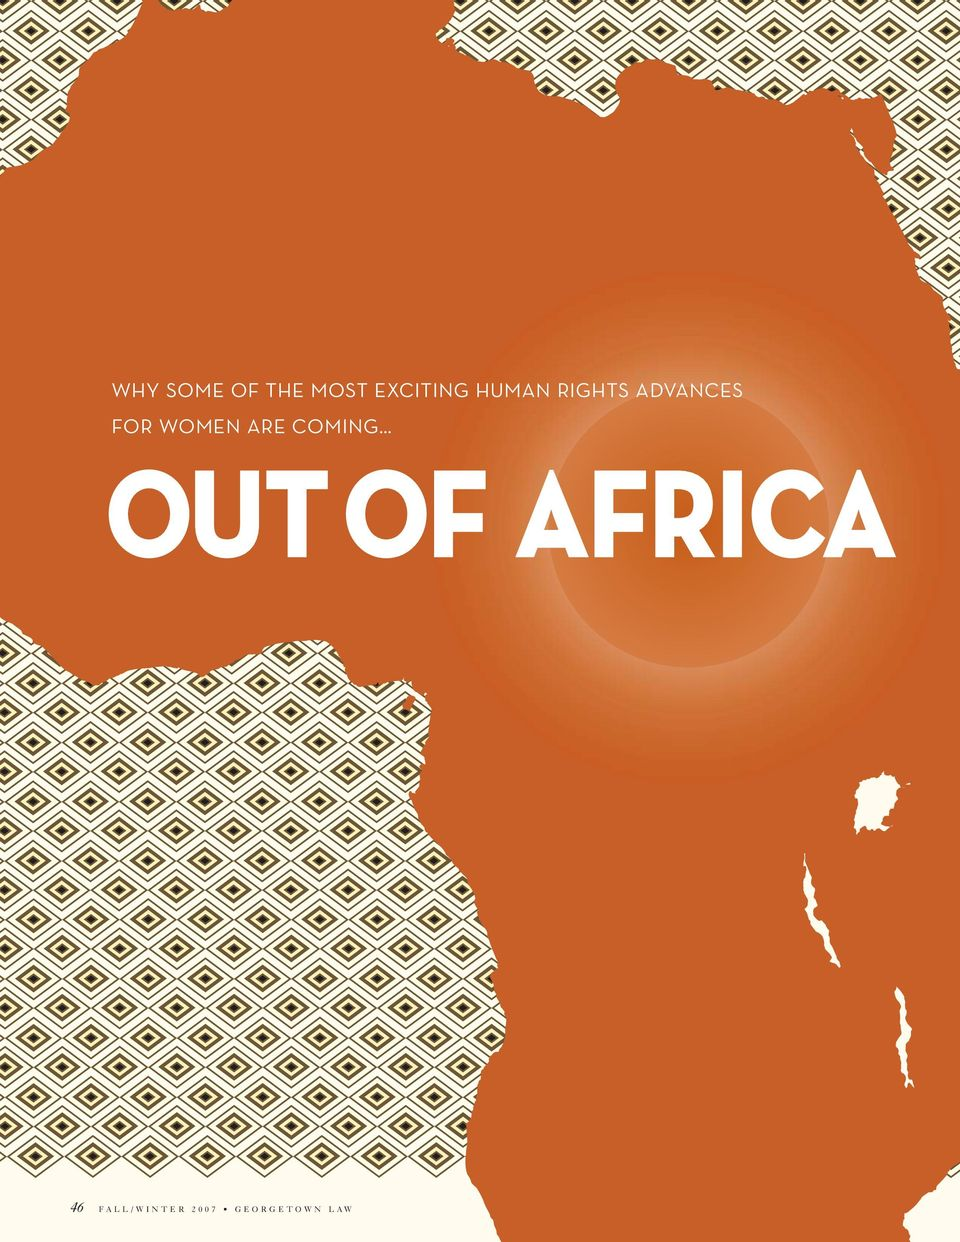 WOMEN ARE COMING OUT OF AFRICA